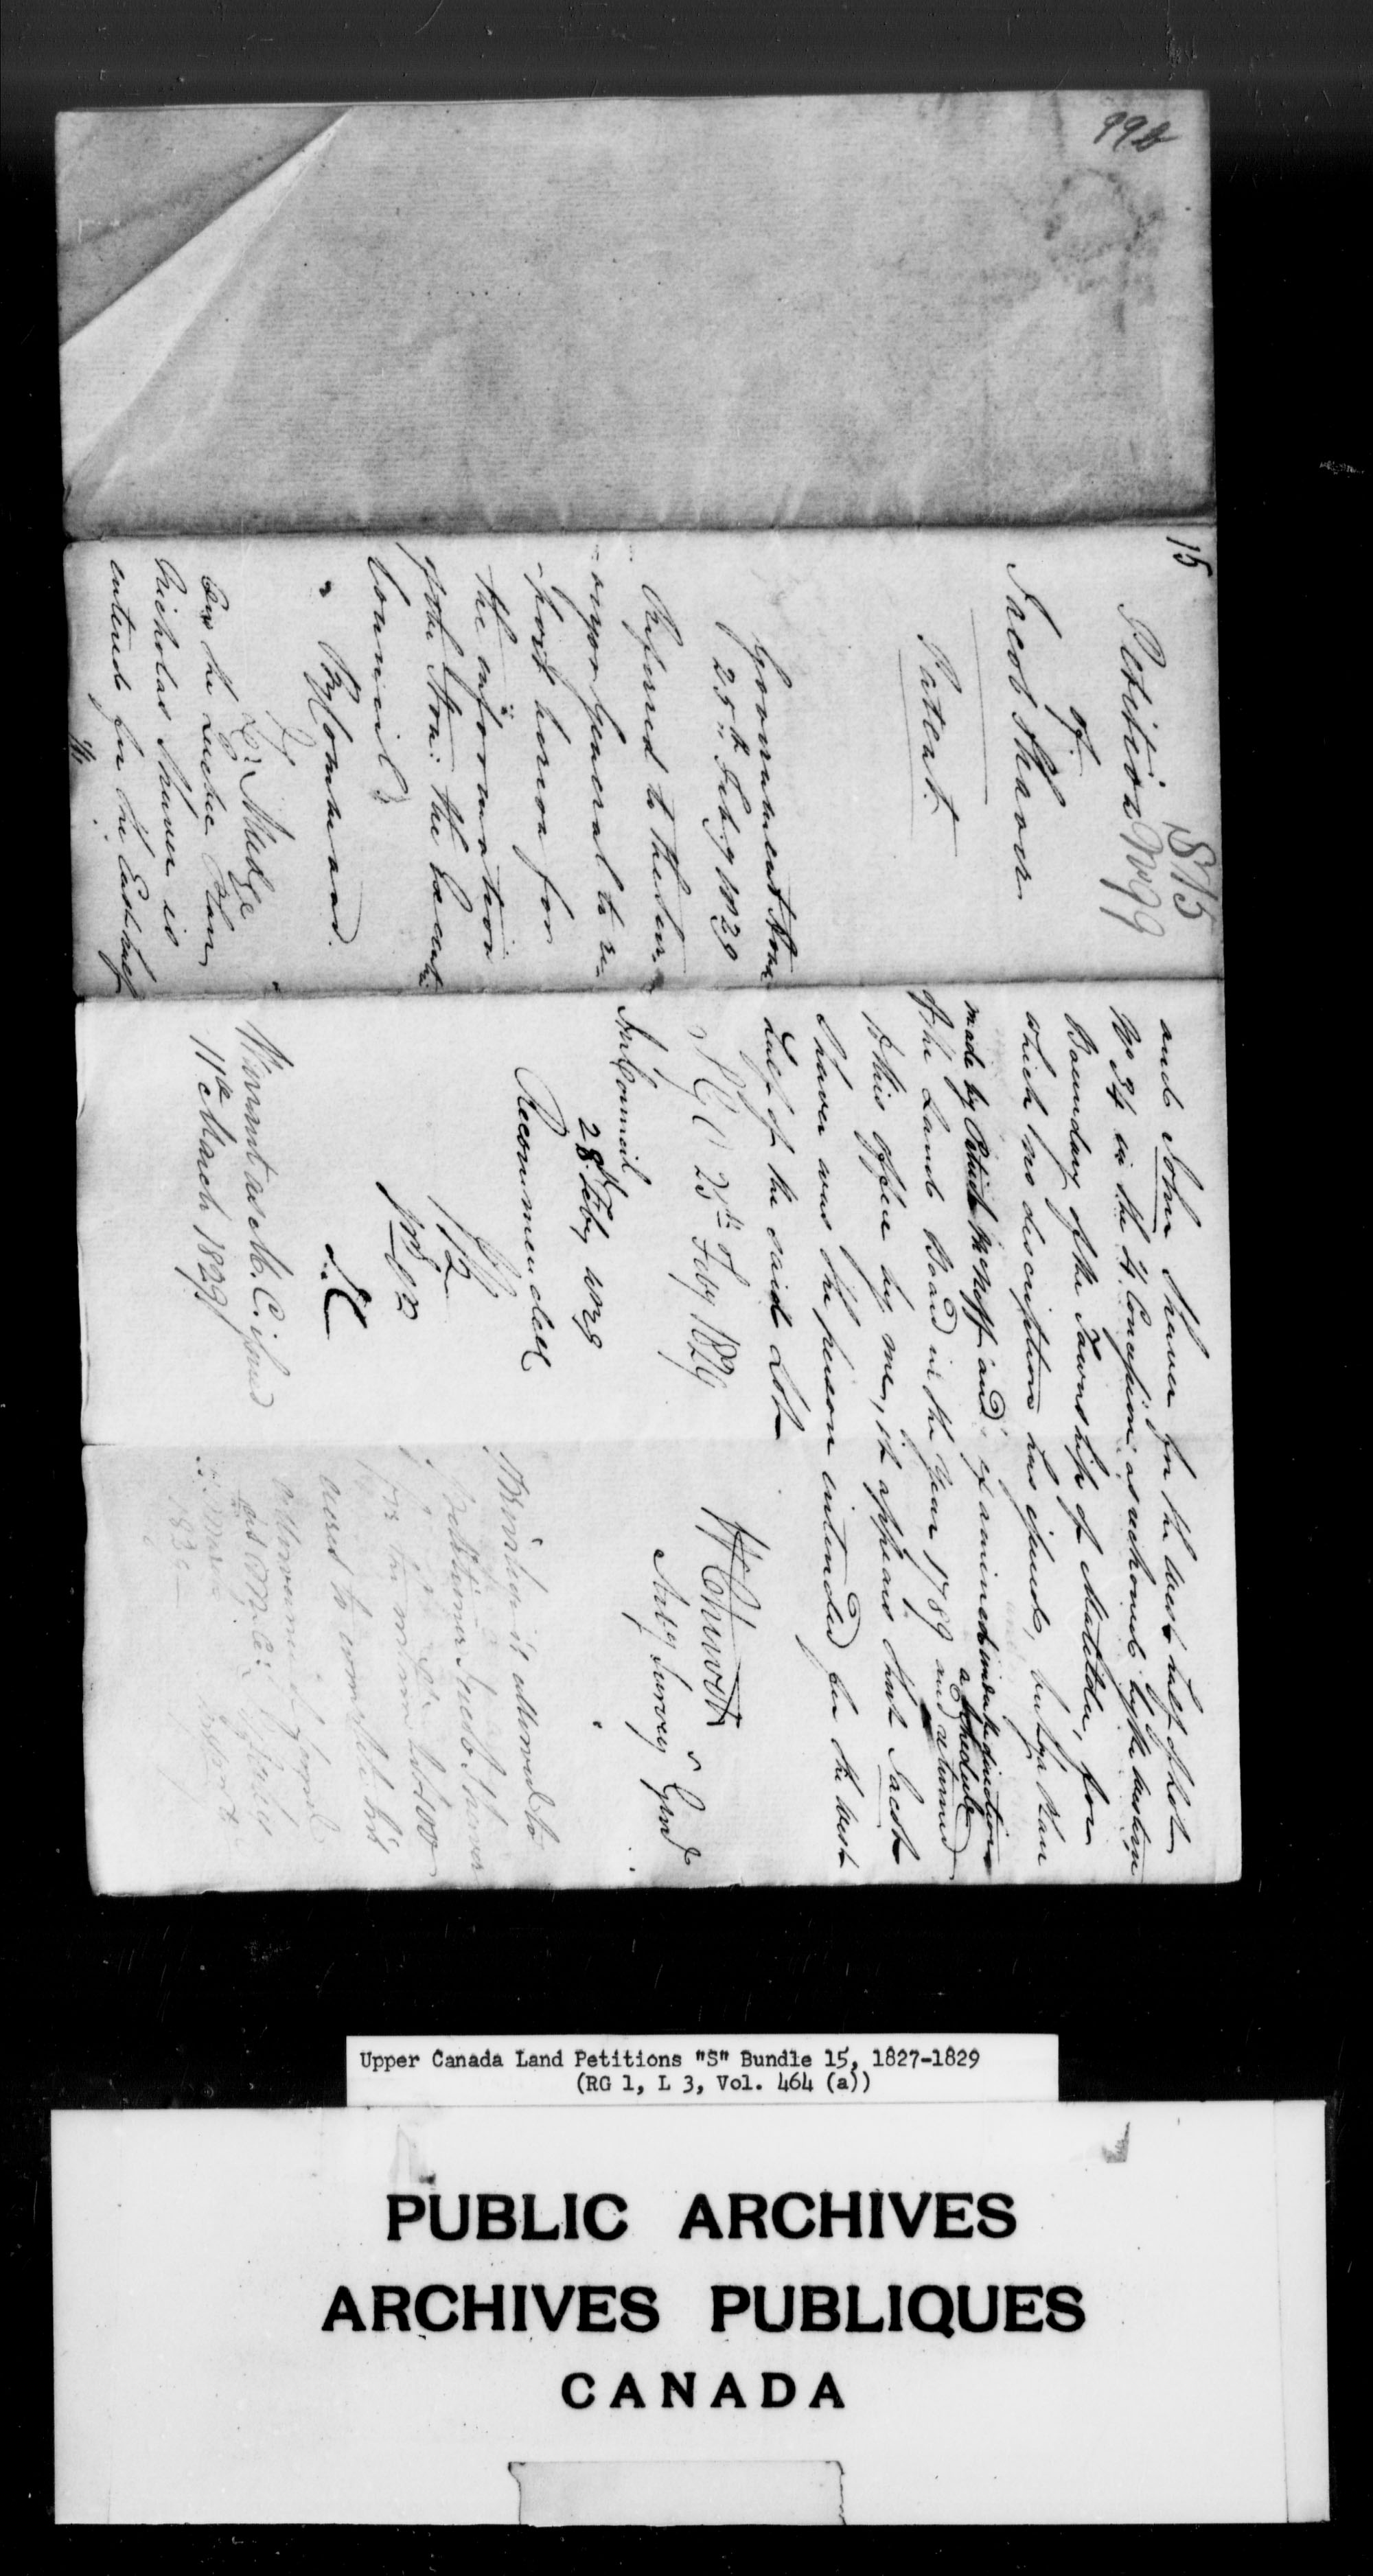 Title: Upper Canada Land Petitions (1763-1865) - Mikan Number: 205131 - Microform: c-2815